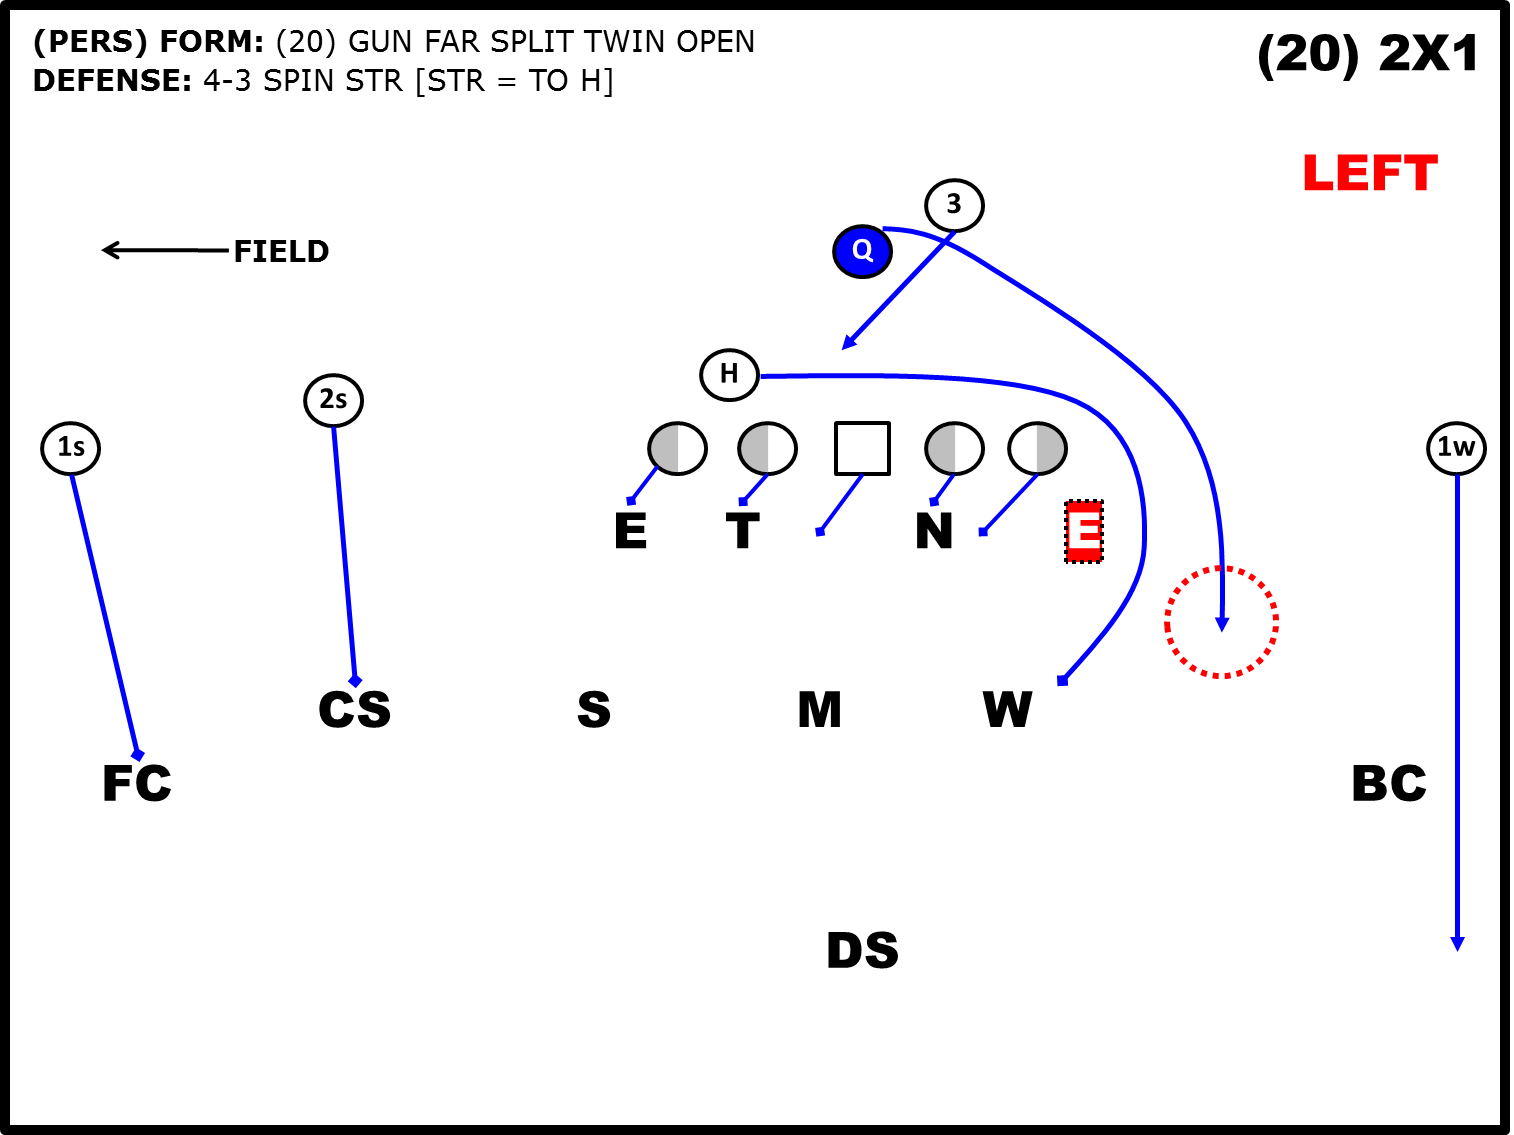 Attacking the Zone Read